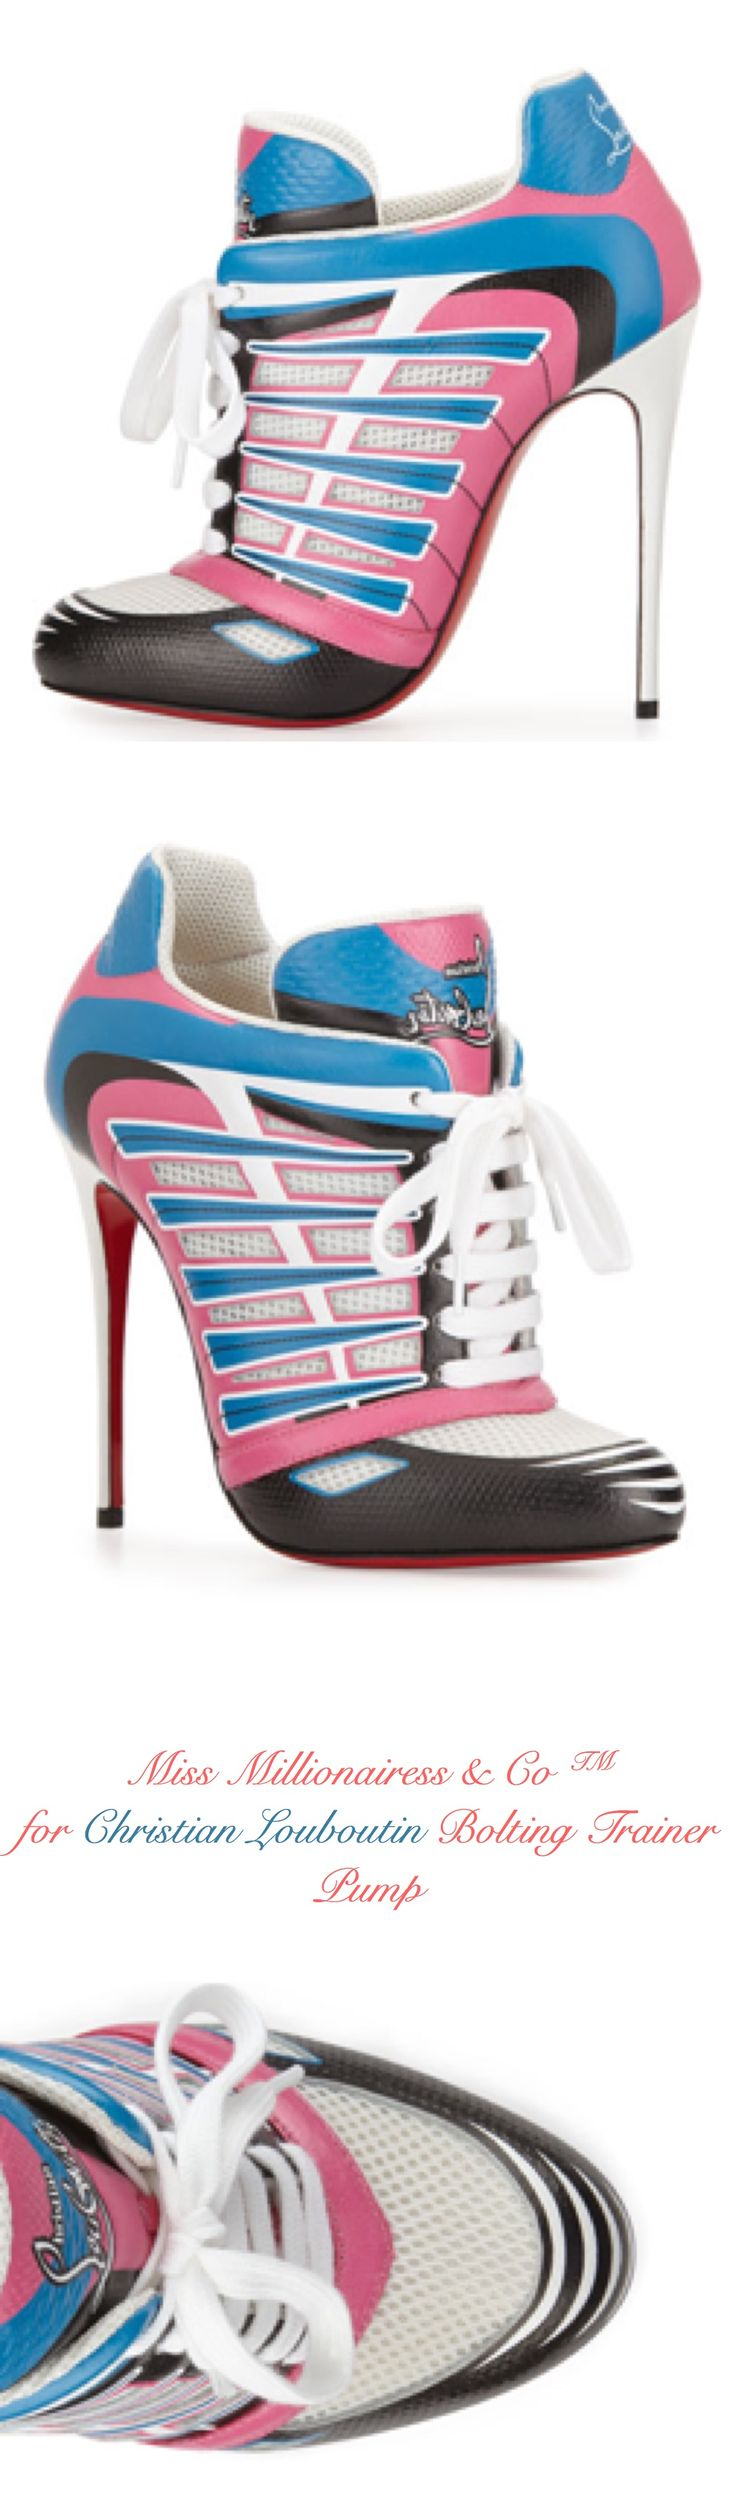 Christian Louboutin ~ Bolting Trainer Pump 2015